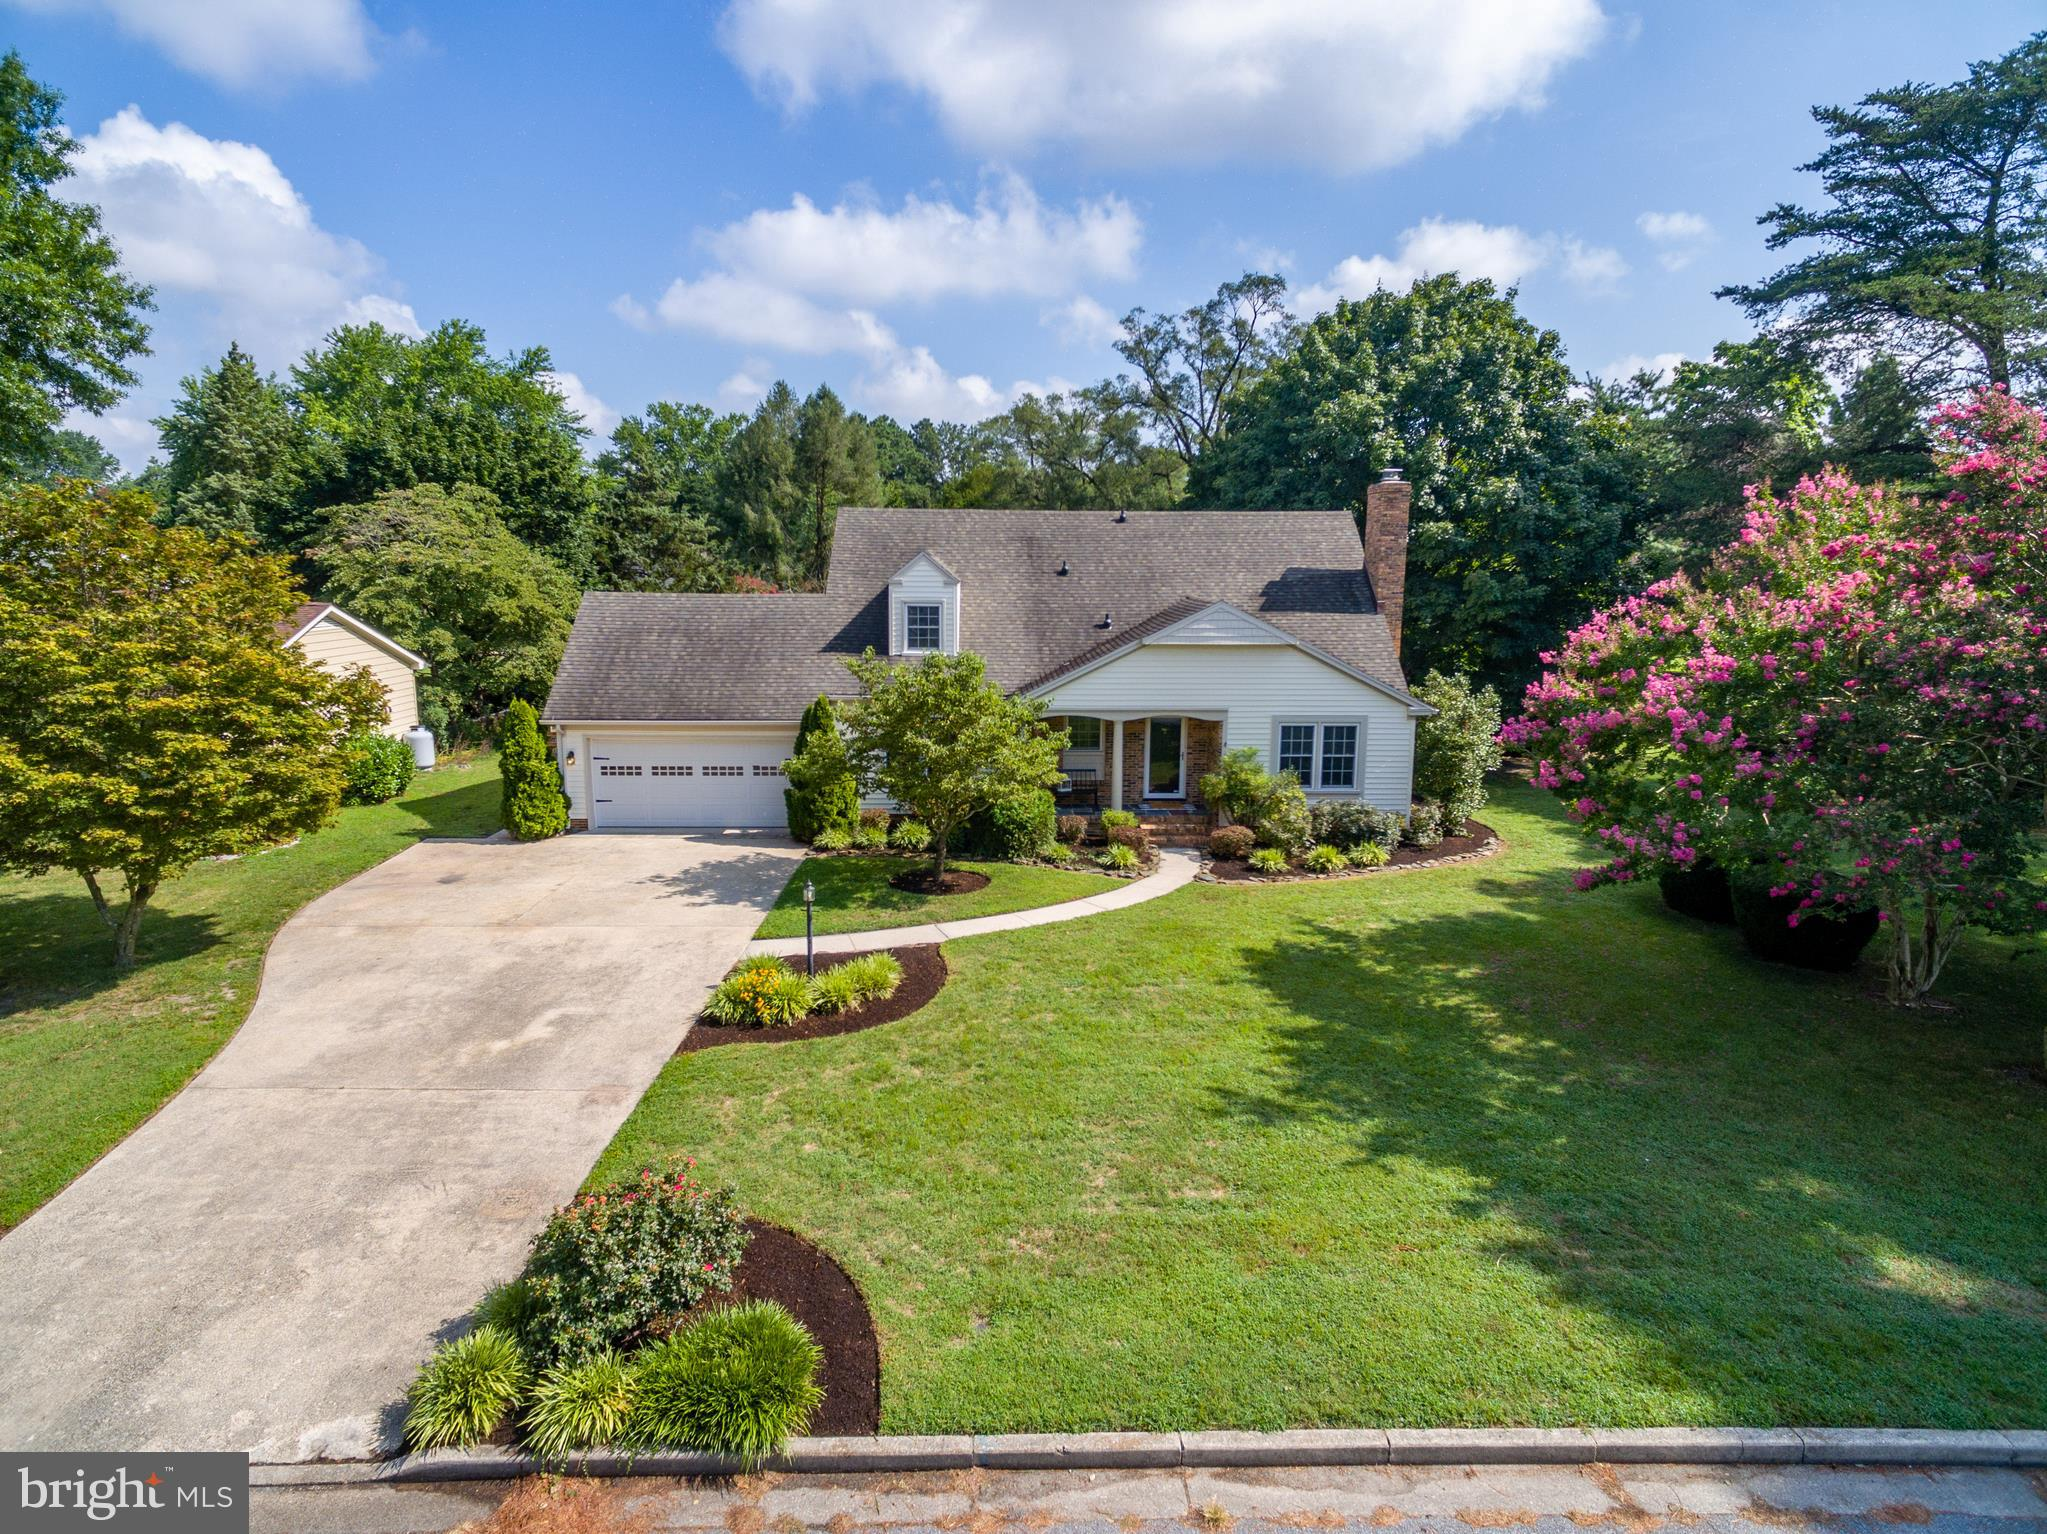 413 LOBLOLLY Ln, Salisbury, MD, 21801